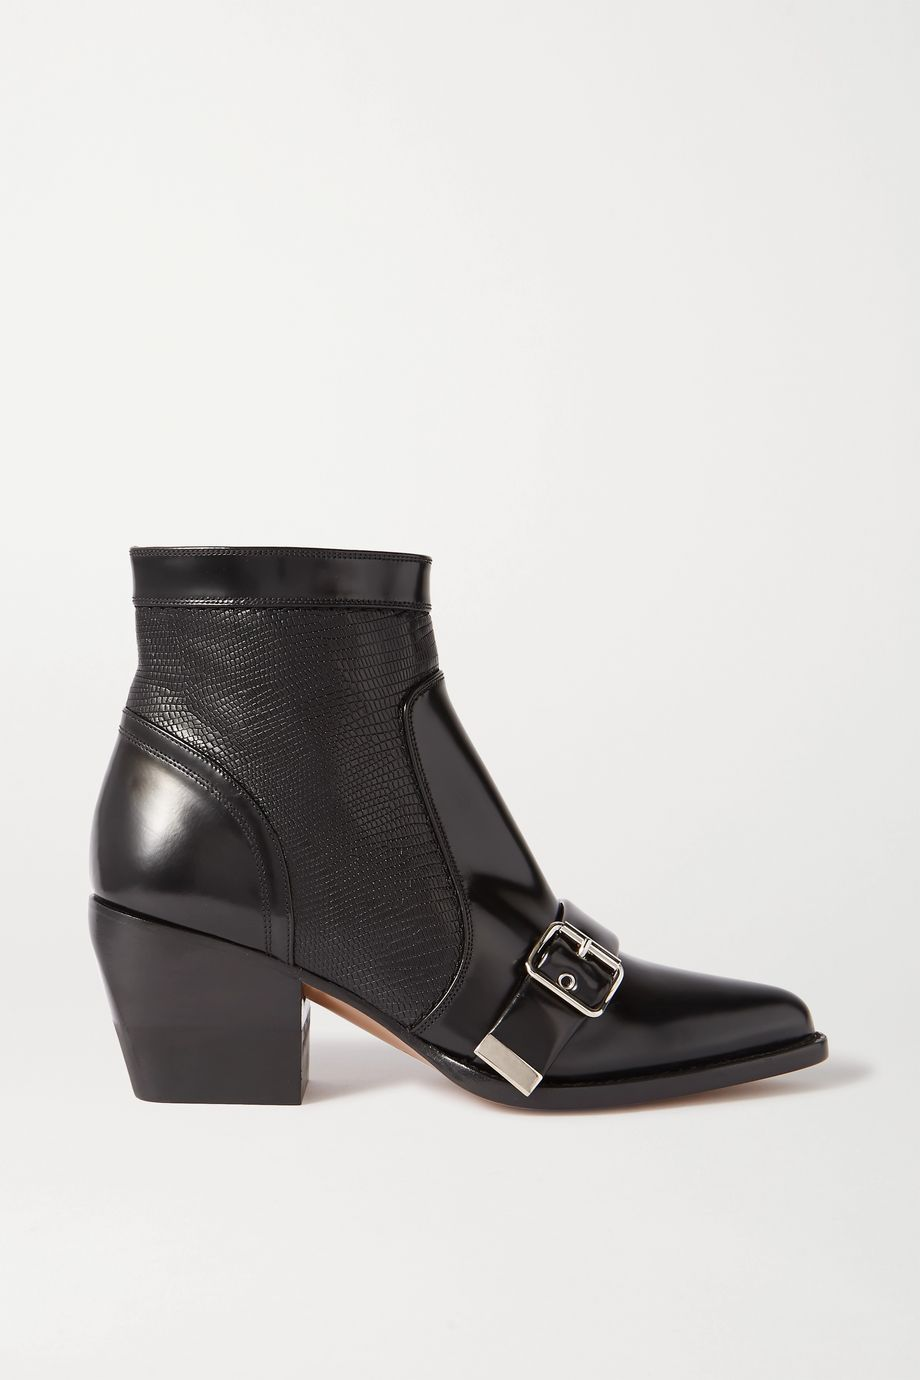 Chloé Rylee glossed and lizard-effect leather ankle boots